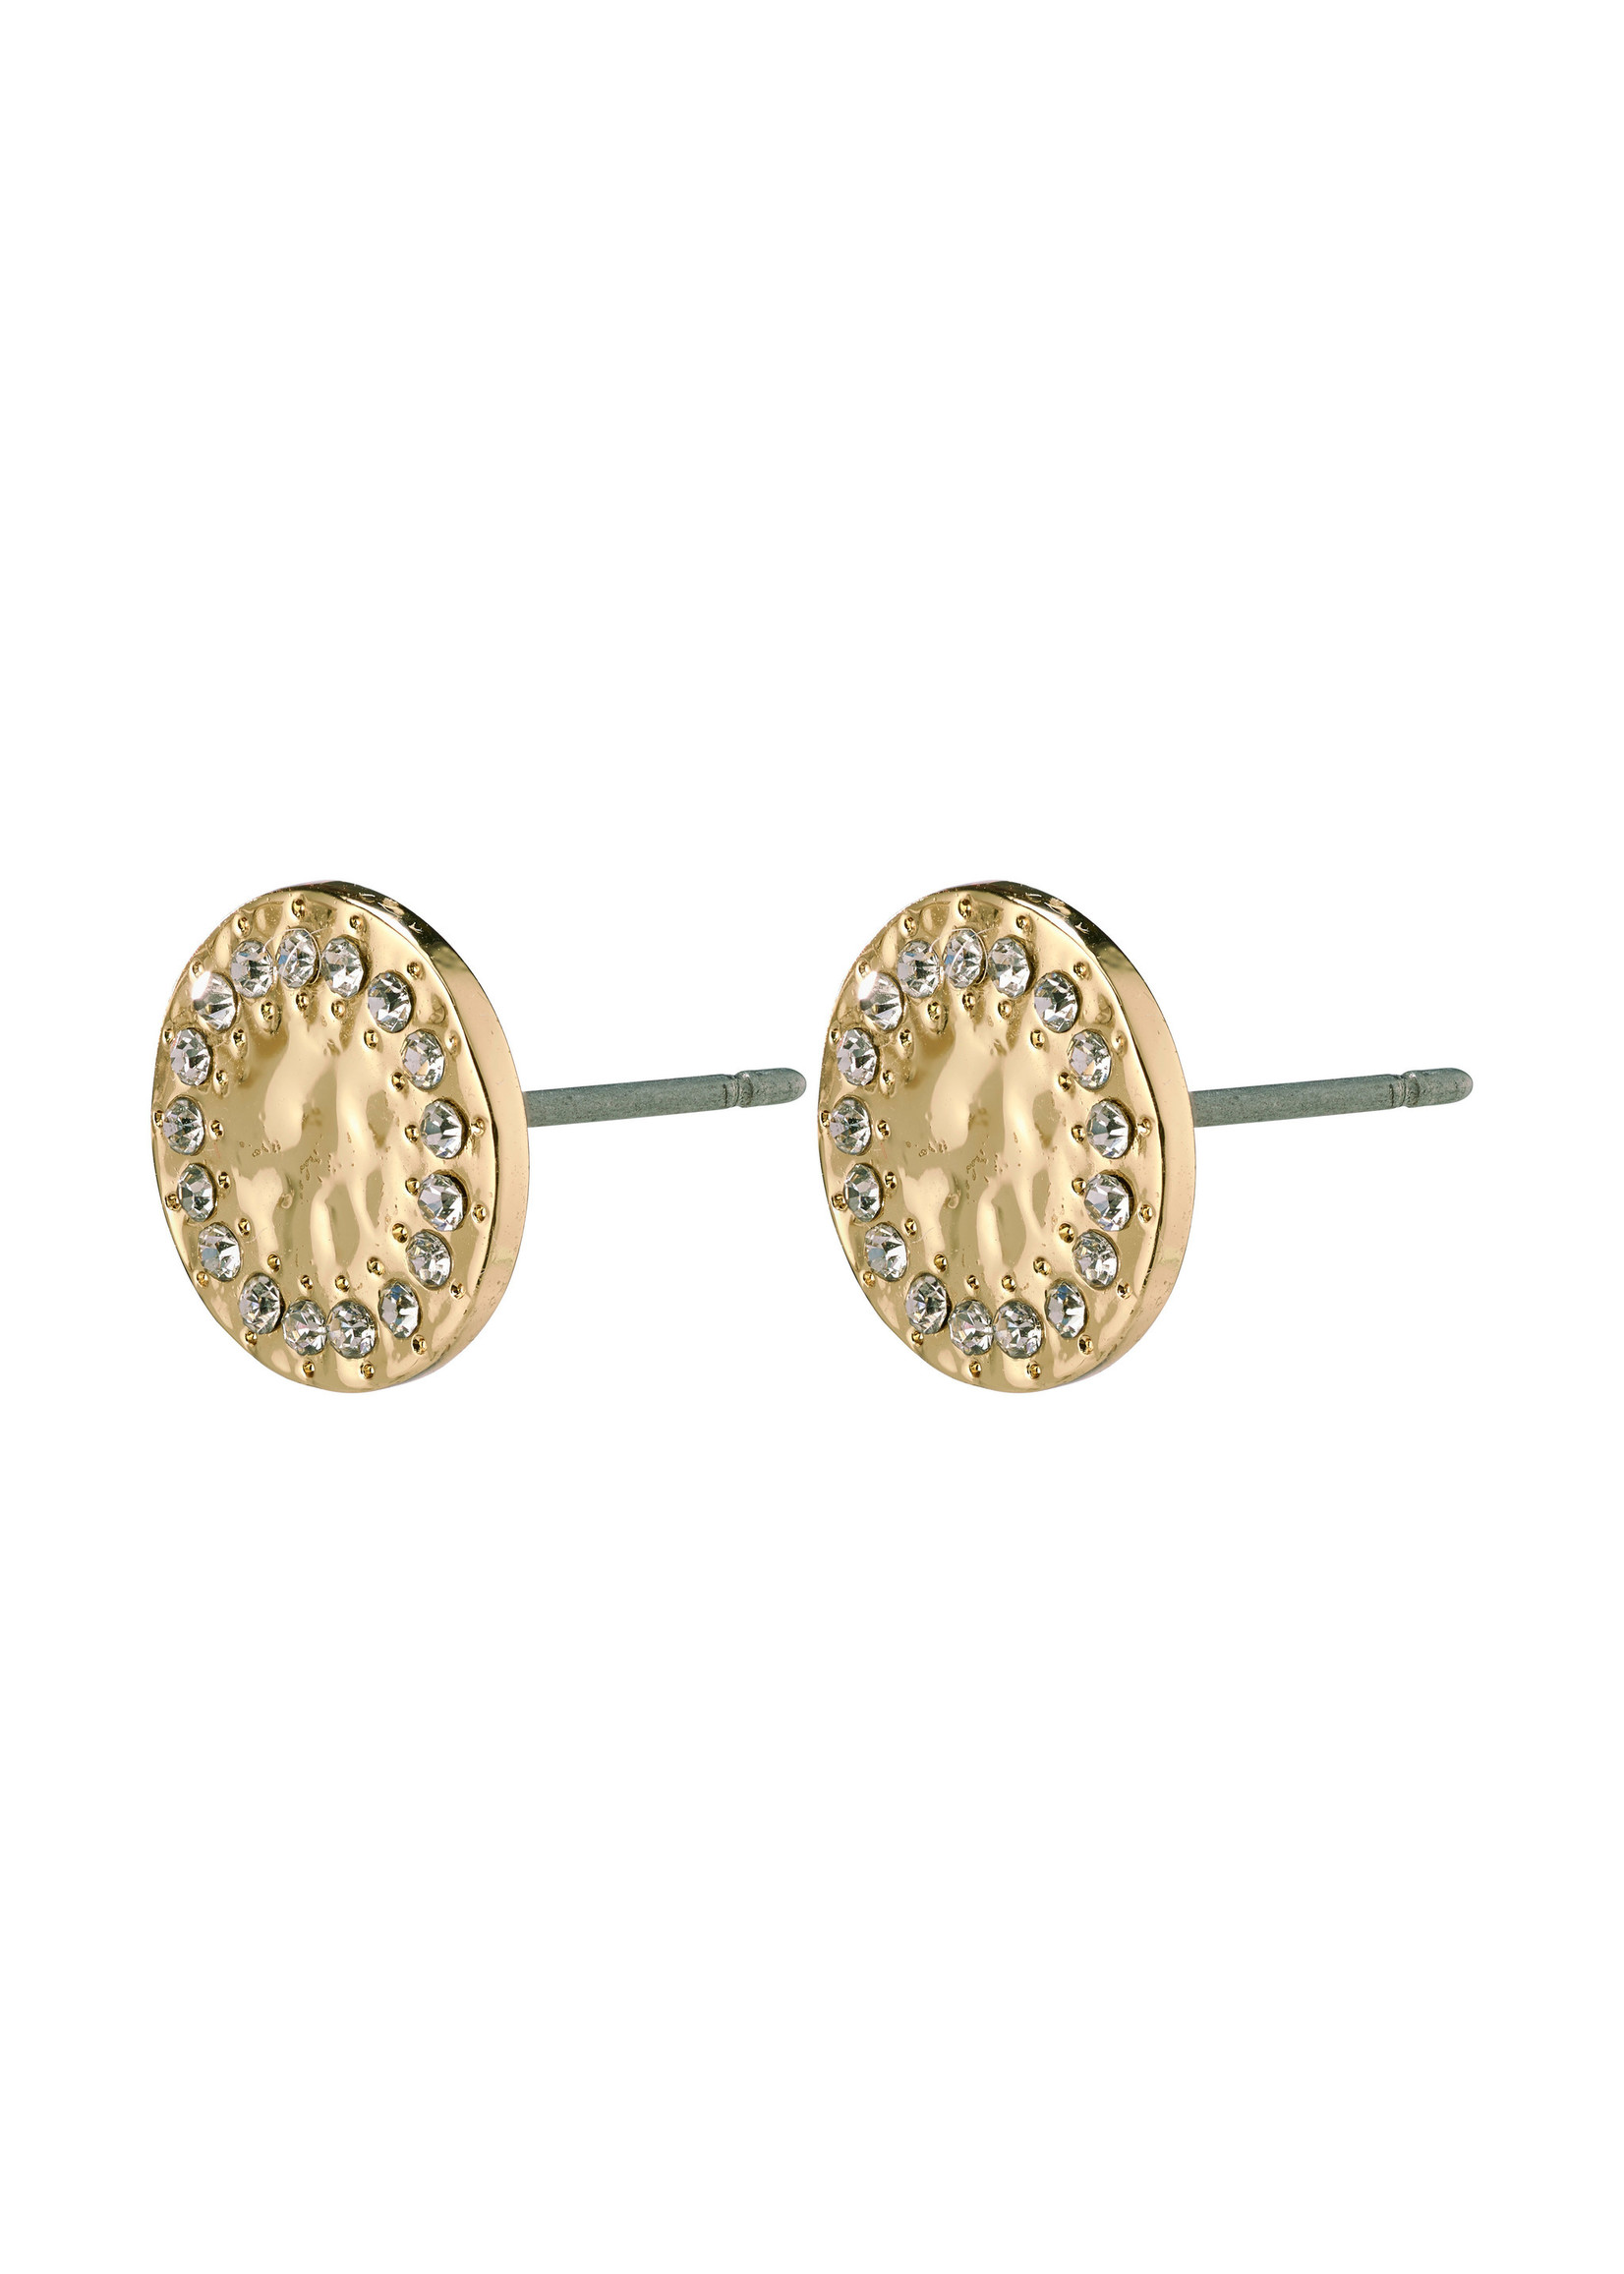 Compassion Stud Earrings - Gold